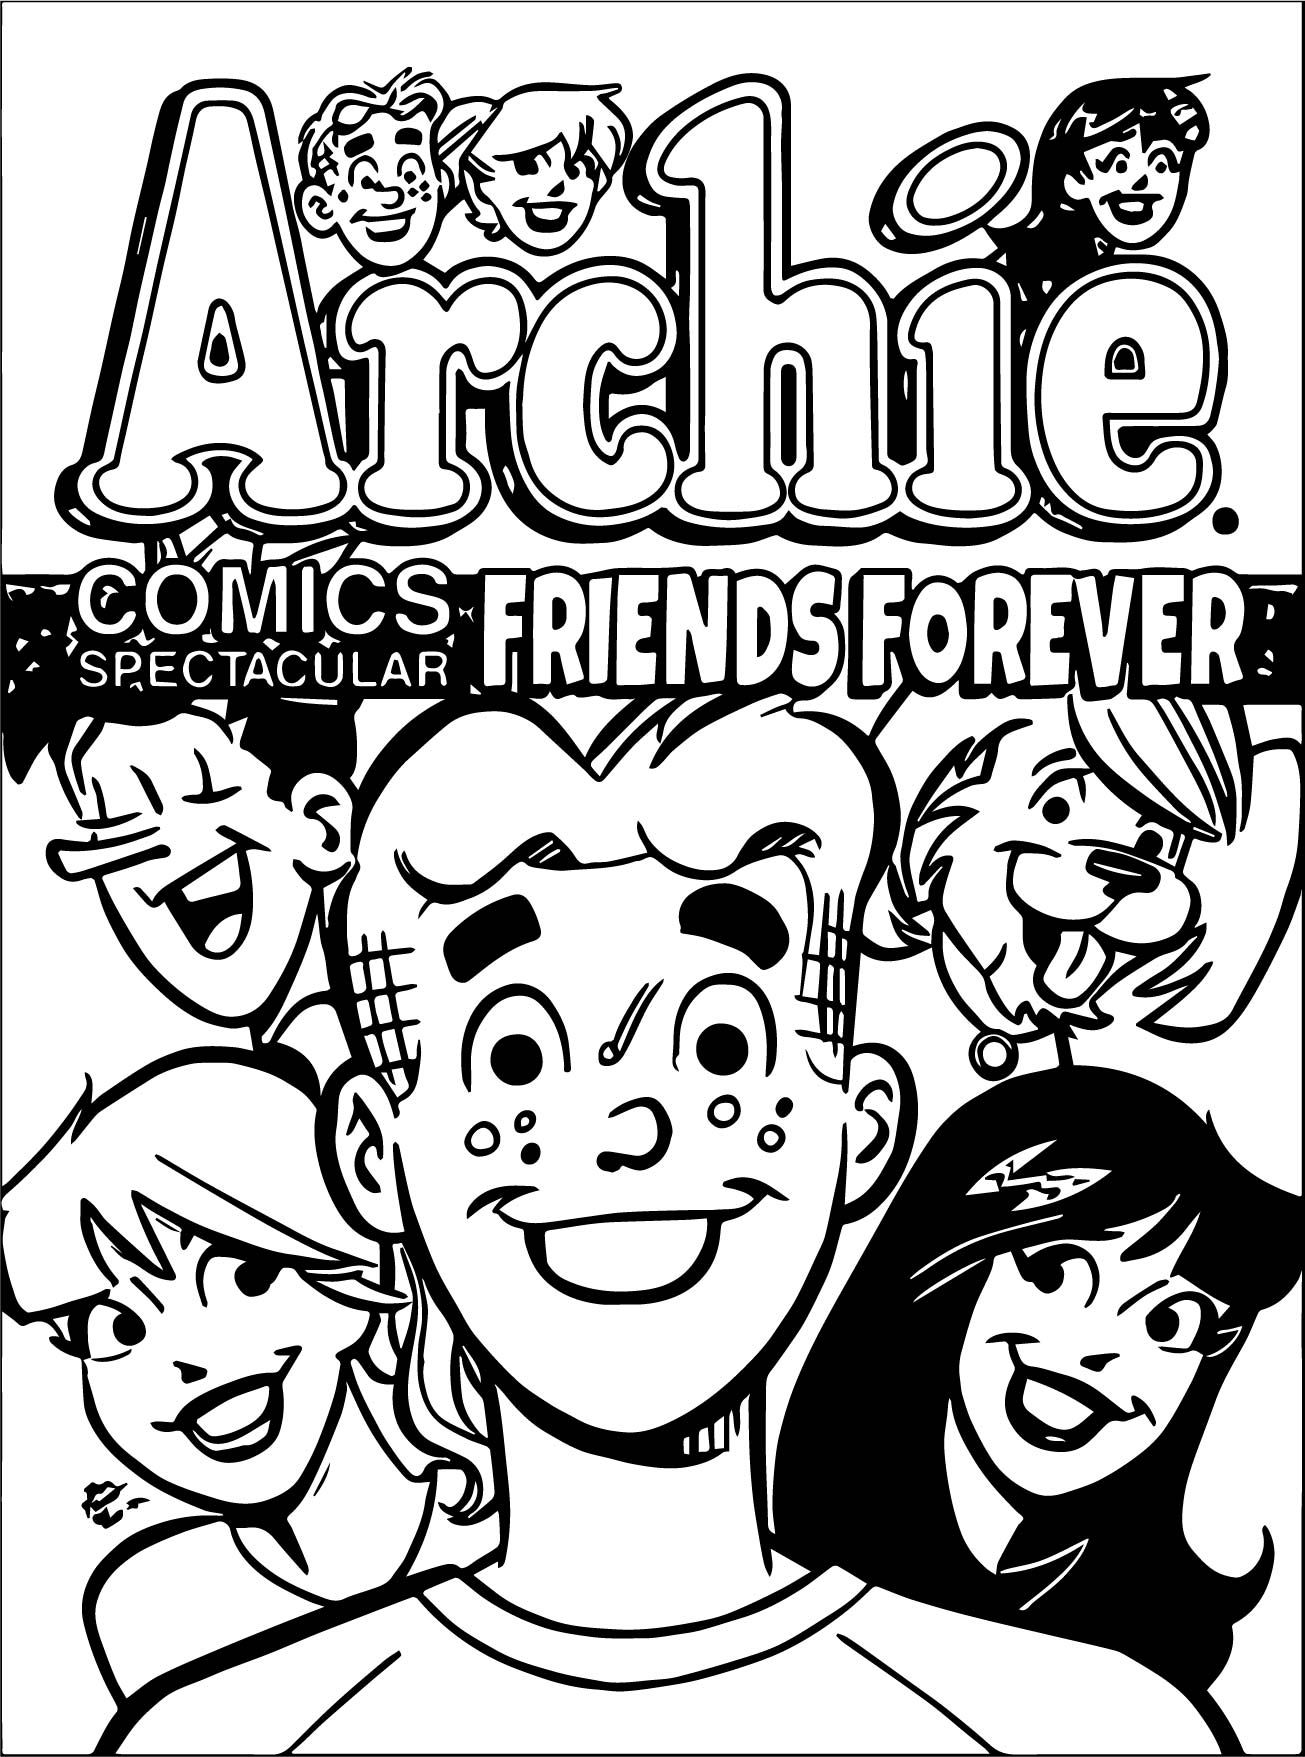 Cool Archie Comics Spectacular Friends Forever Coloring Page Archie Comics Friends Forever Comics